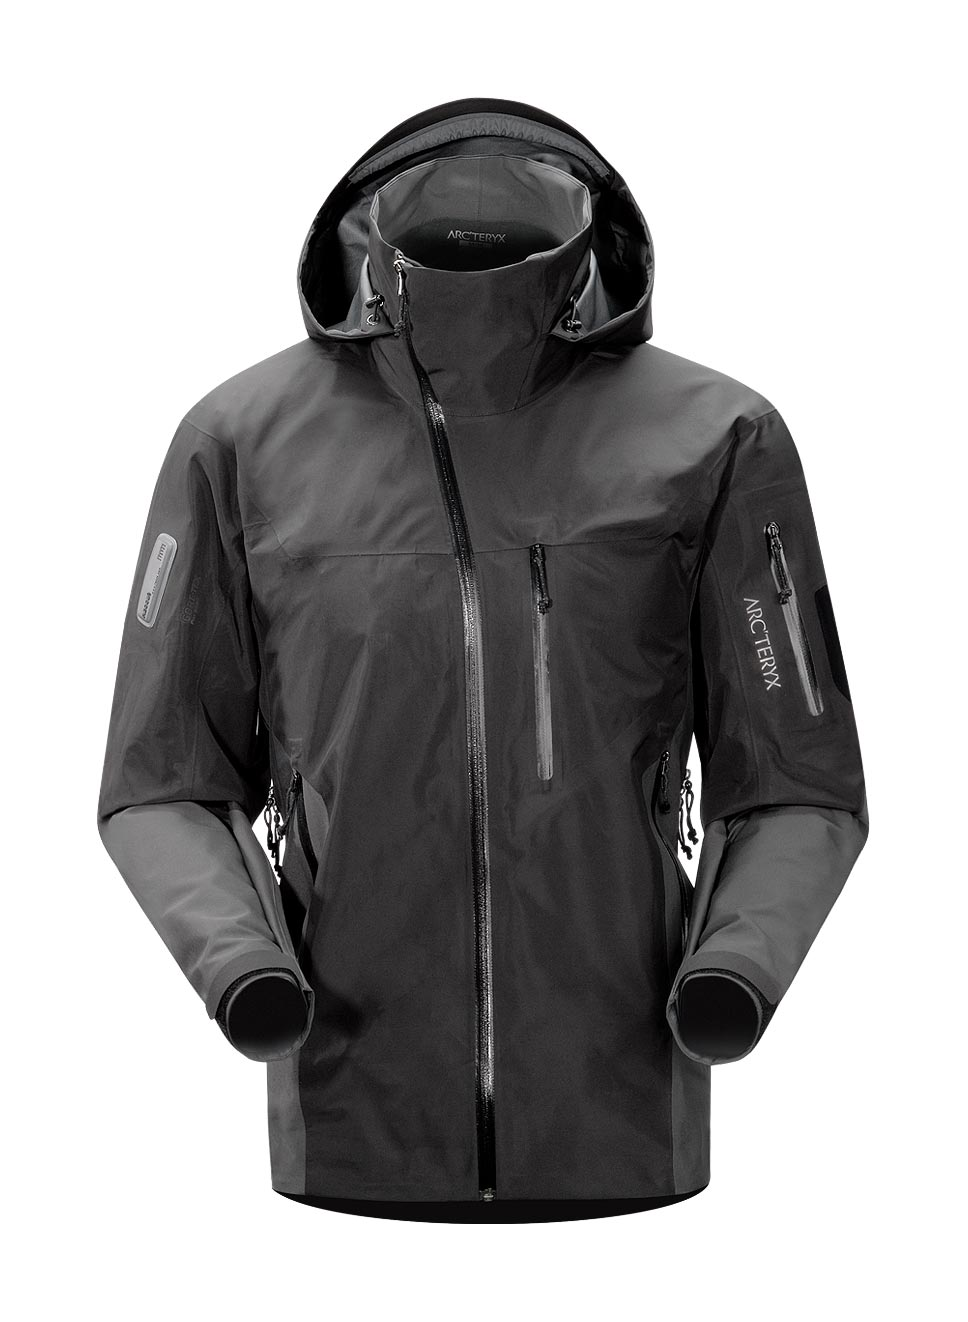 Arcteryx Black bird Sidewinder SV Jacket